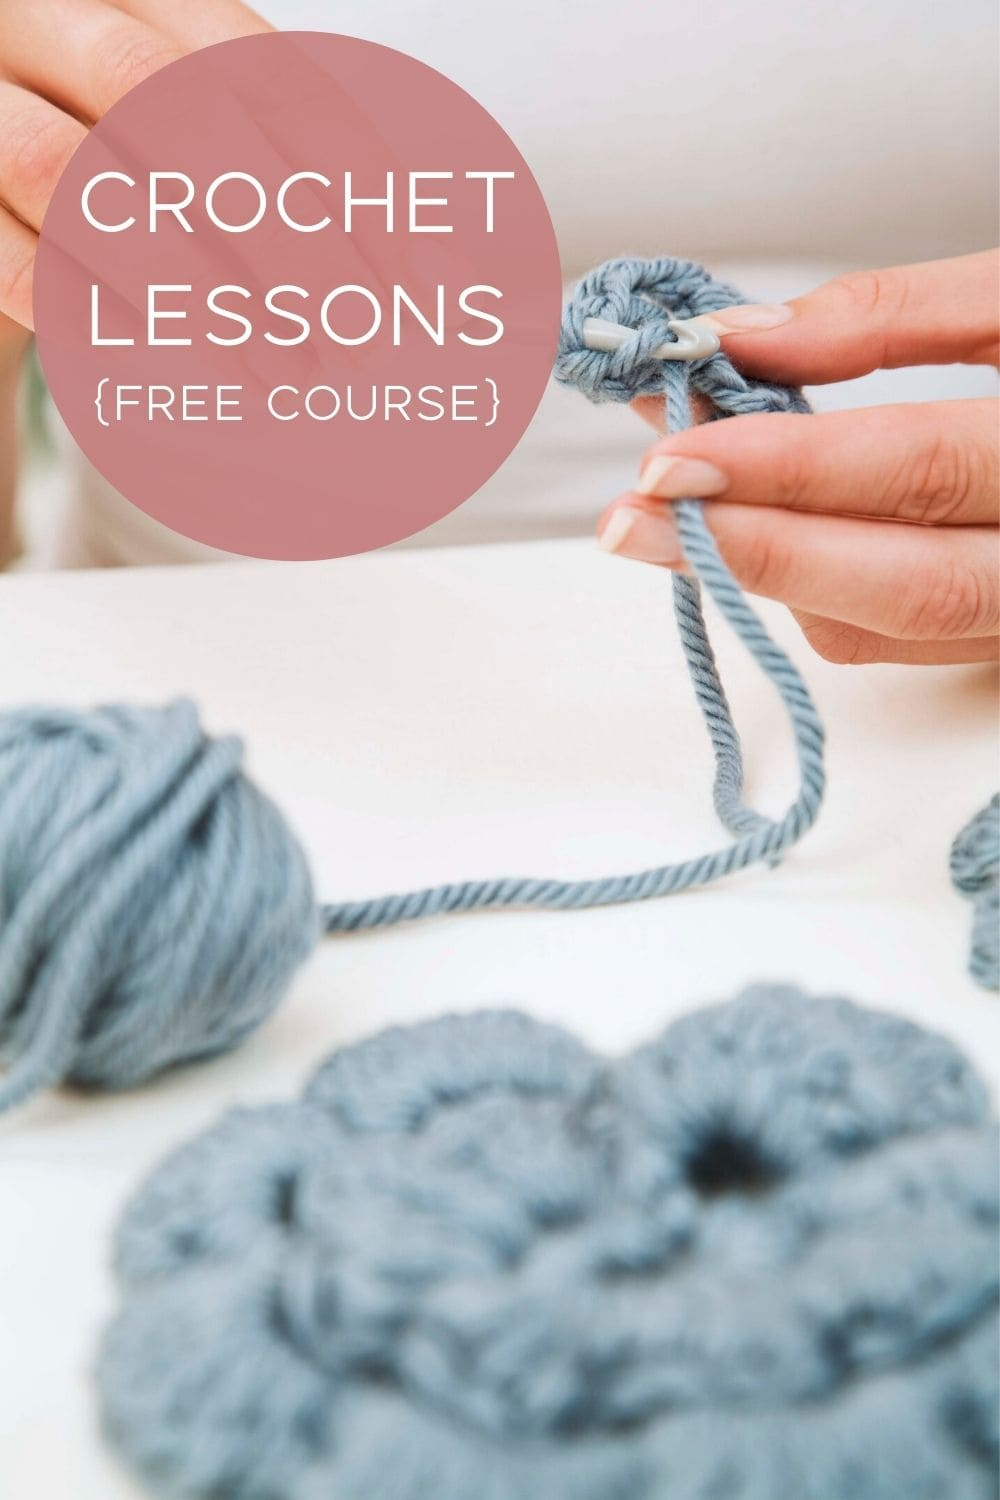 crochet lessons with yarn and hook